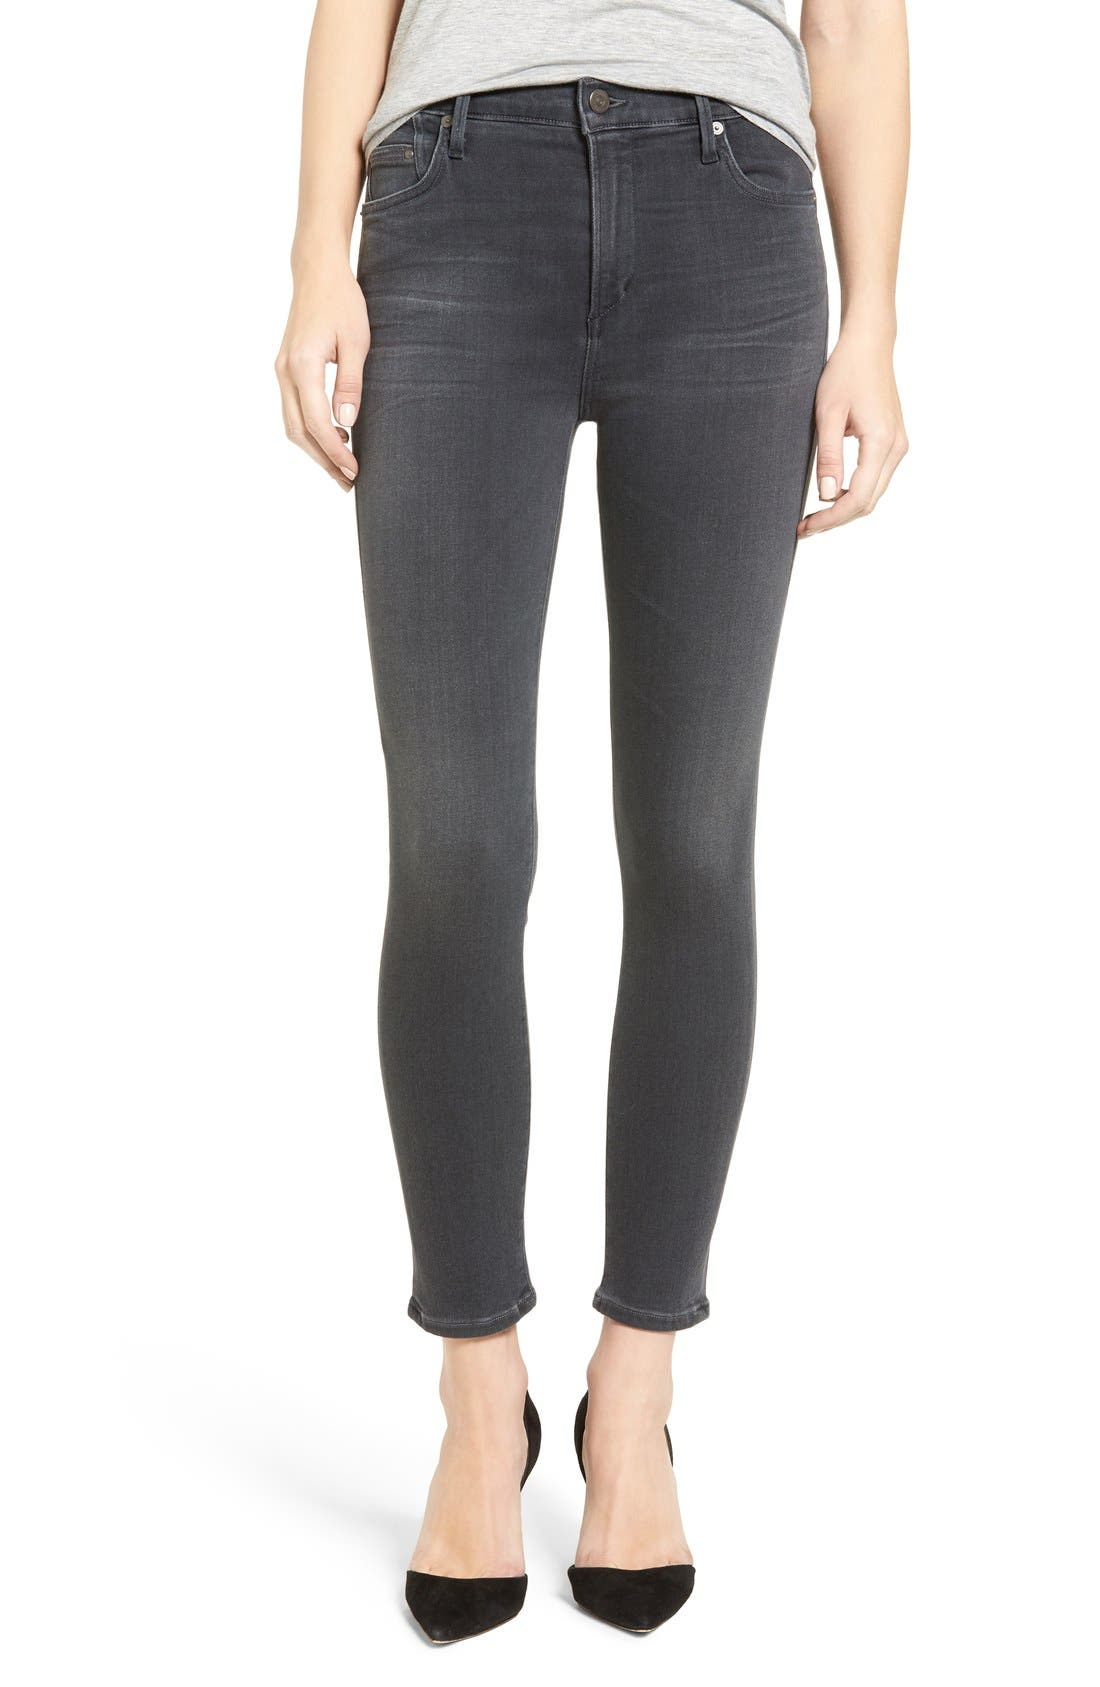 Citizens of Humanity Rocket High Waist Crop Skinny Jeans (Chateau)